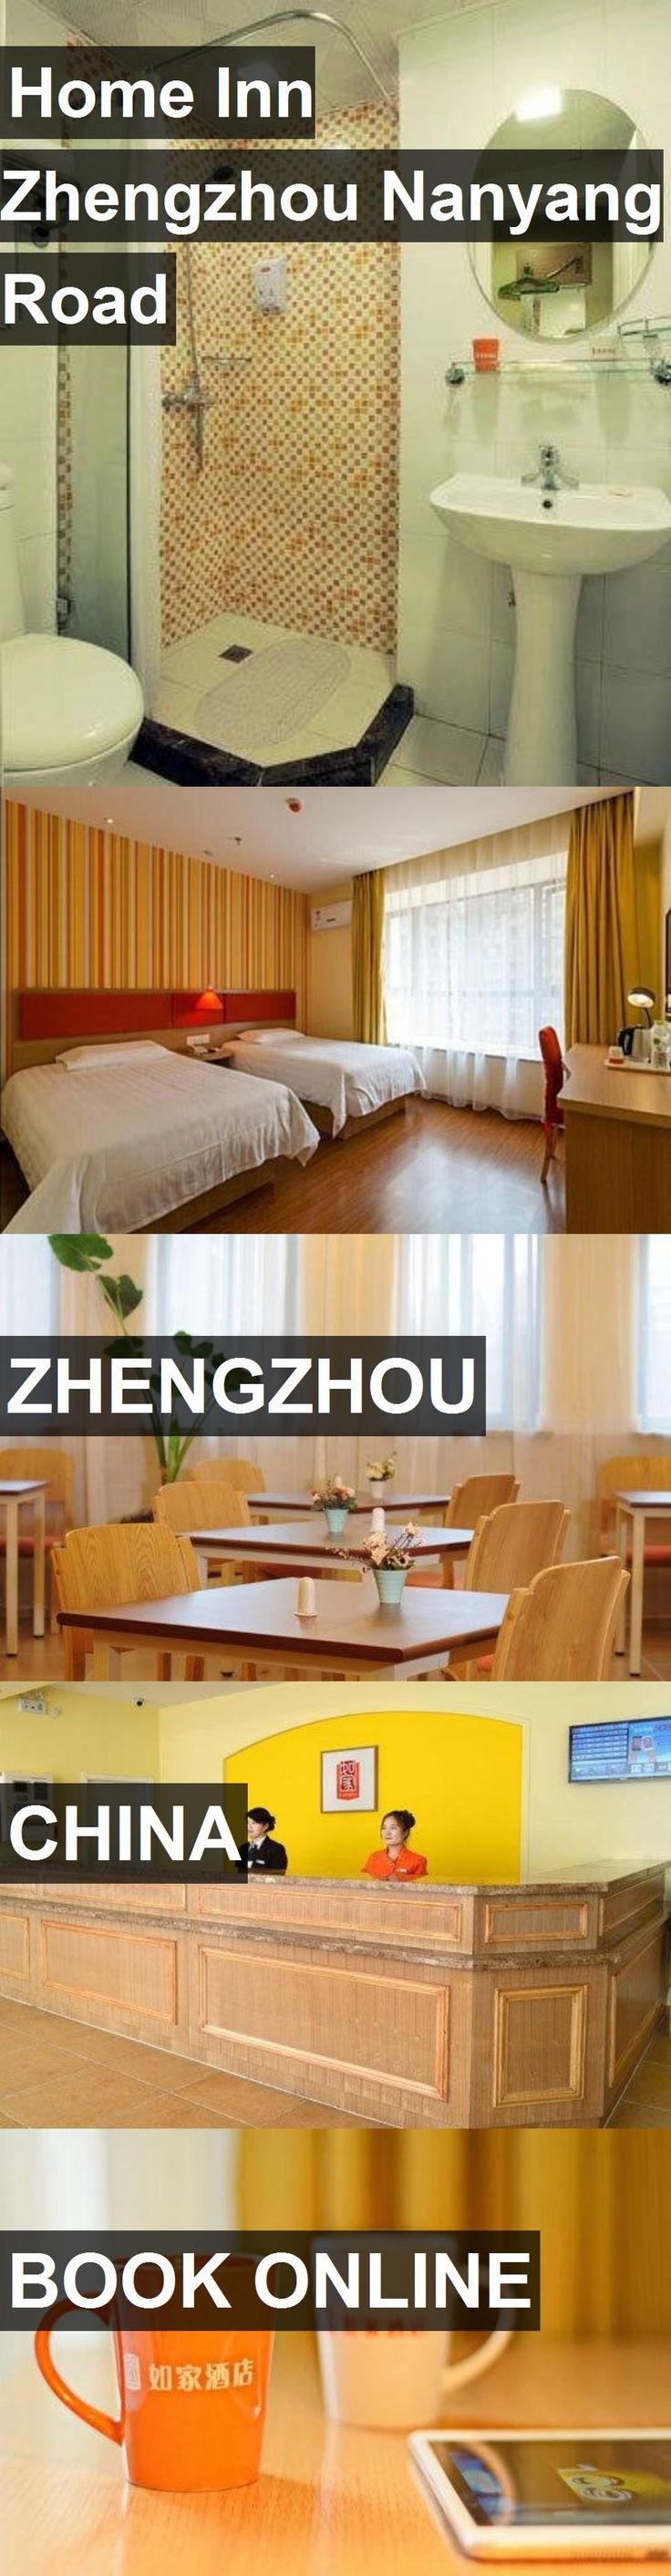 Hotel Home Inn Zhengzhou Nanyang Road in Zhengzhou, China. For more information, photos, reviews and best prices please follow the link. #China #Zhengzhou #travel #vacation #hotel